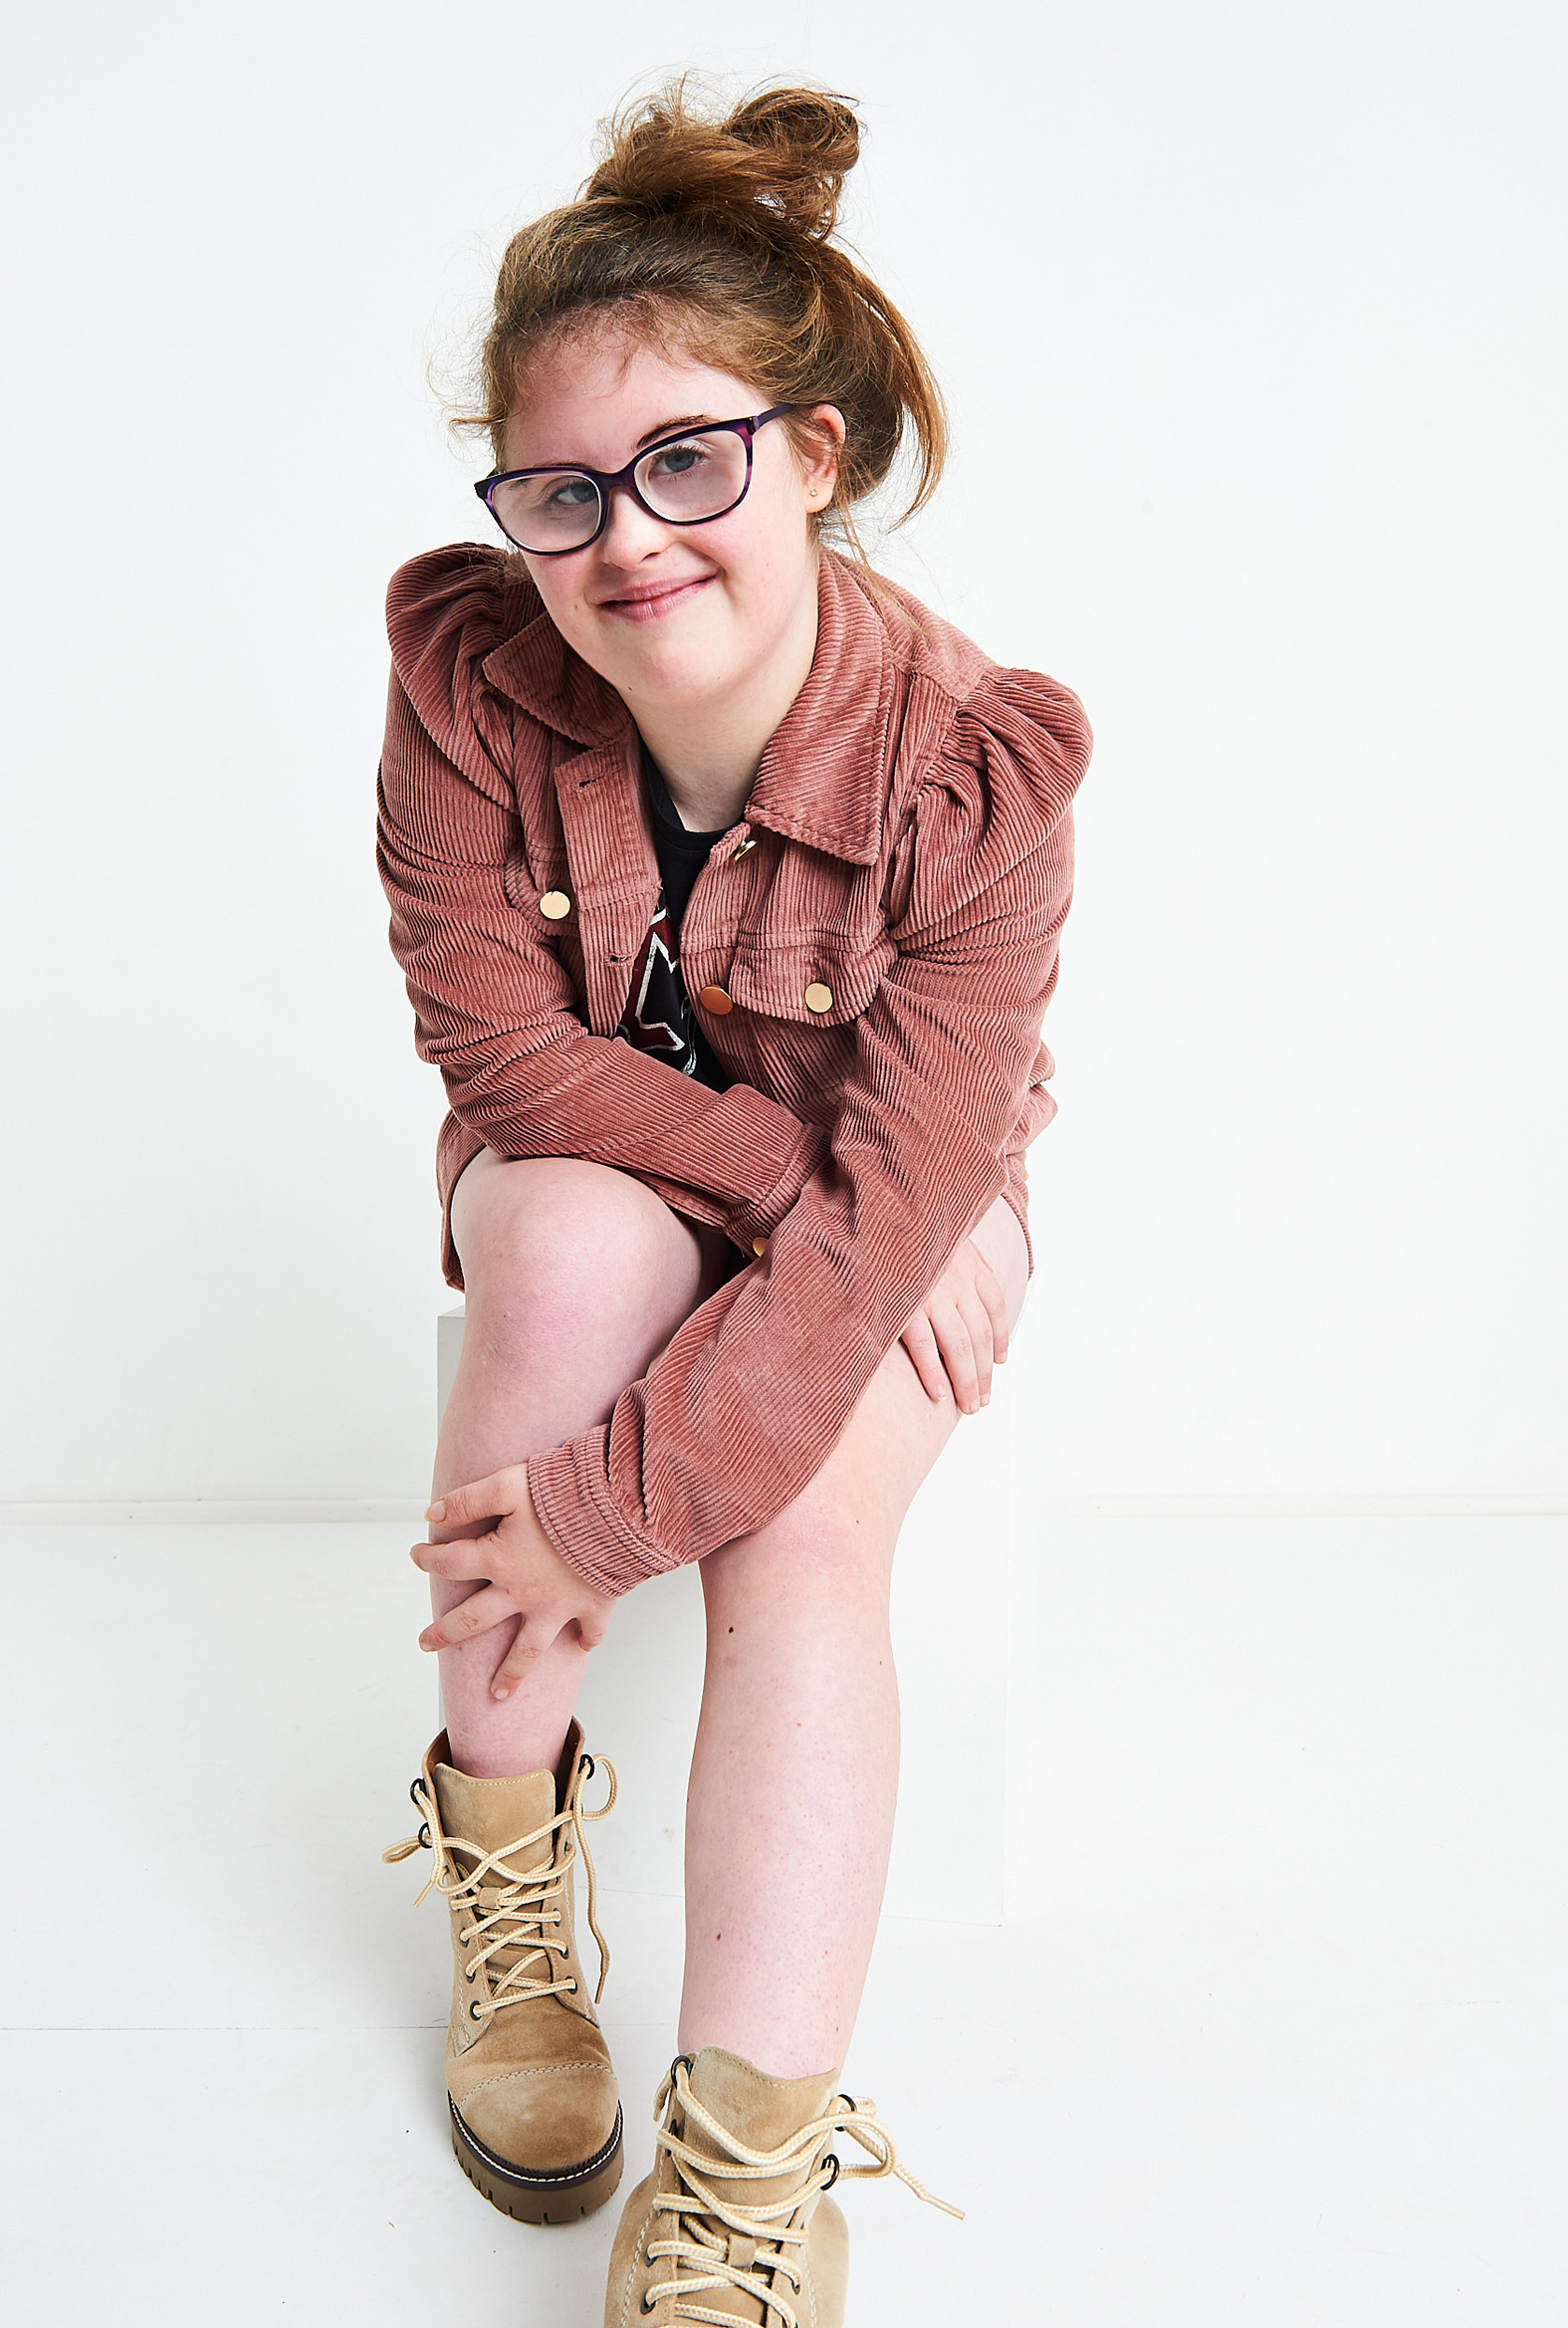 Jessica, Down Syndrome, Zebedee Manageme